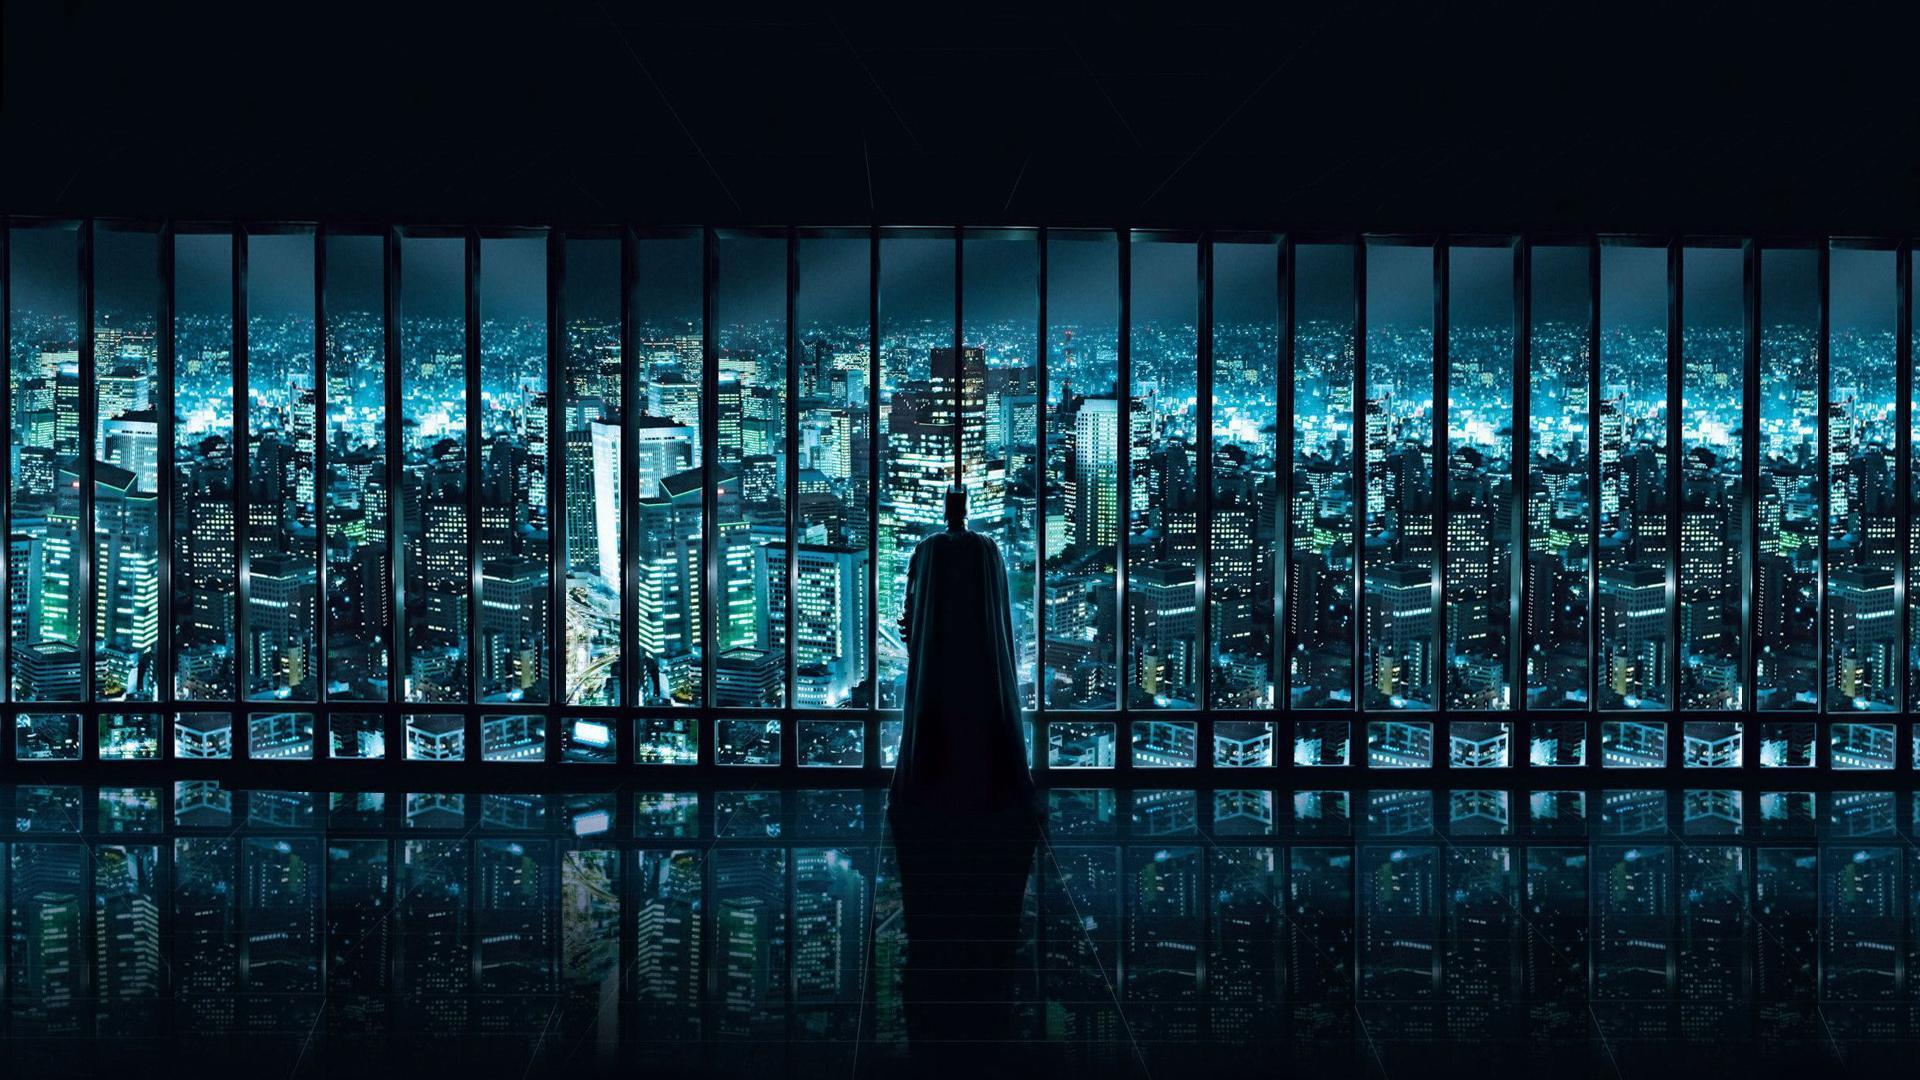 Batman Wallpapers 1920x1080 Wallpaper Cave